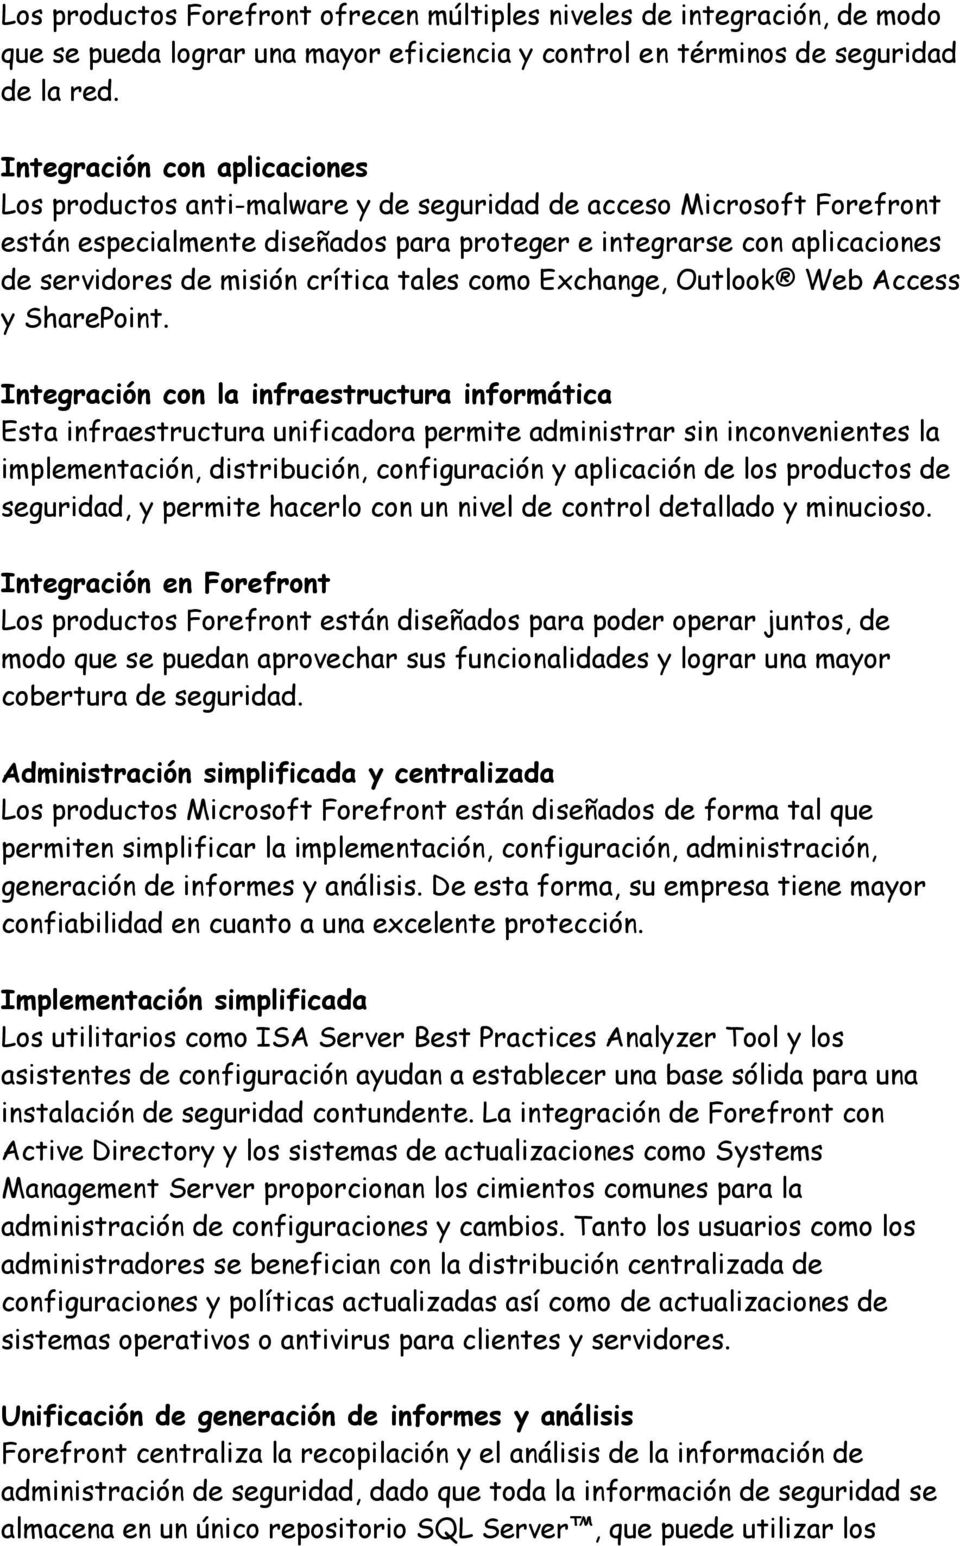 crítica tales como Exchange, Outlook Web Access y SharePoint.